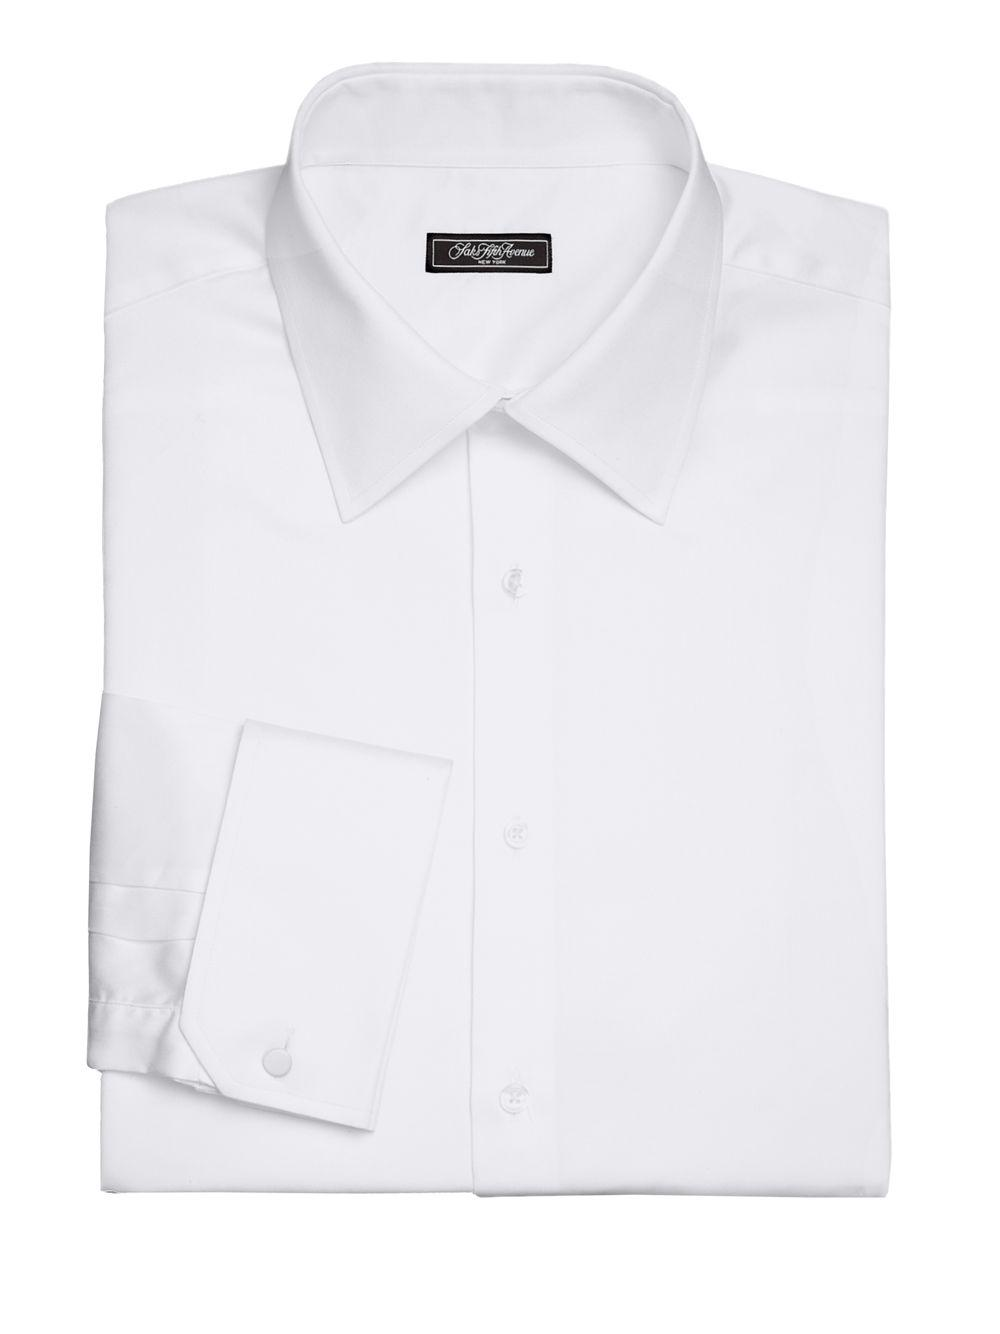 Lyst - Saks Fifth Avenue Regular-fit Solid Cotton Shirt in White for Men